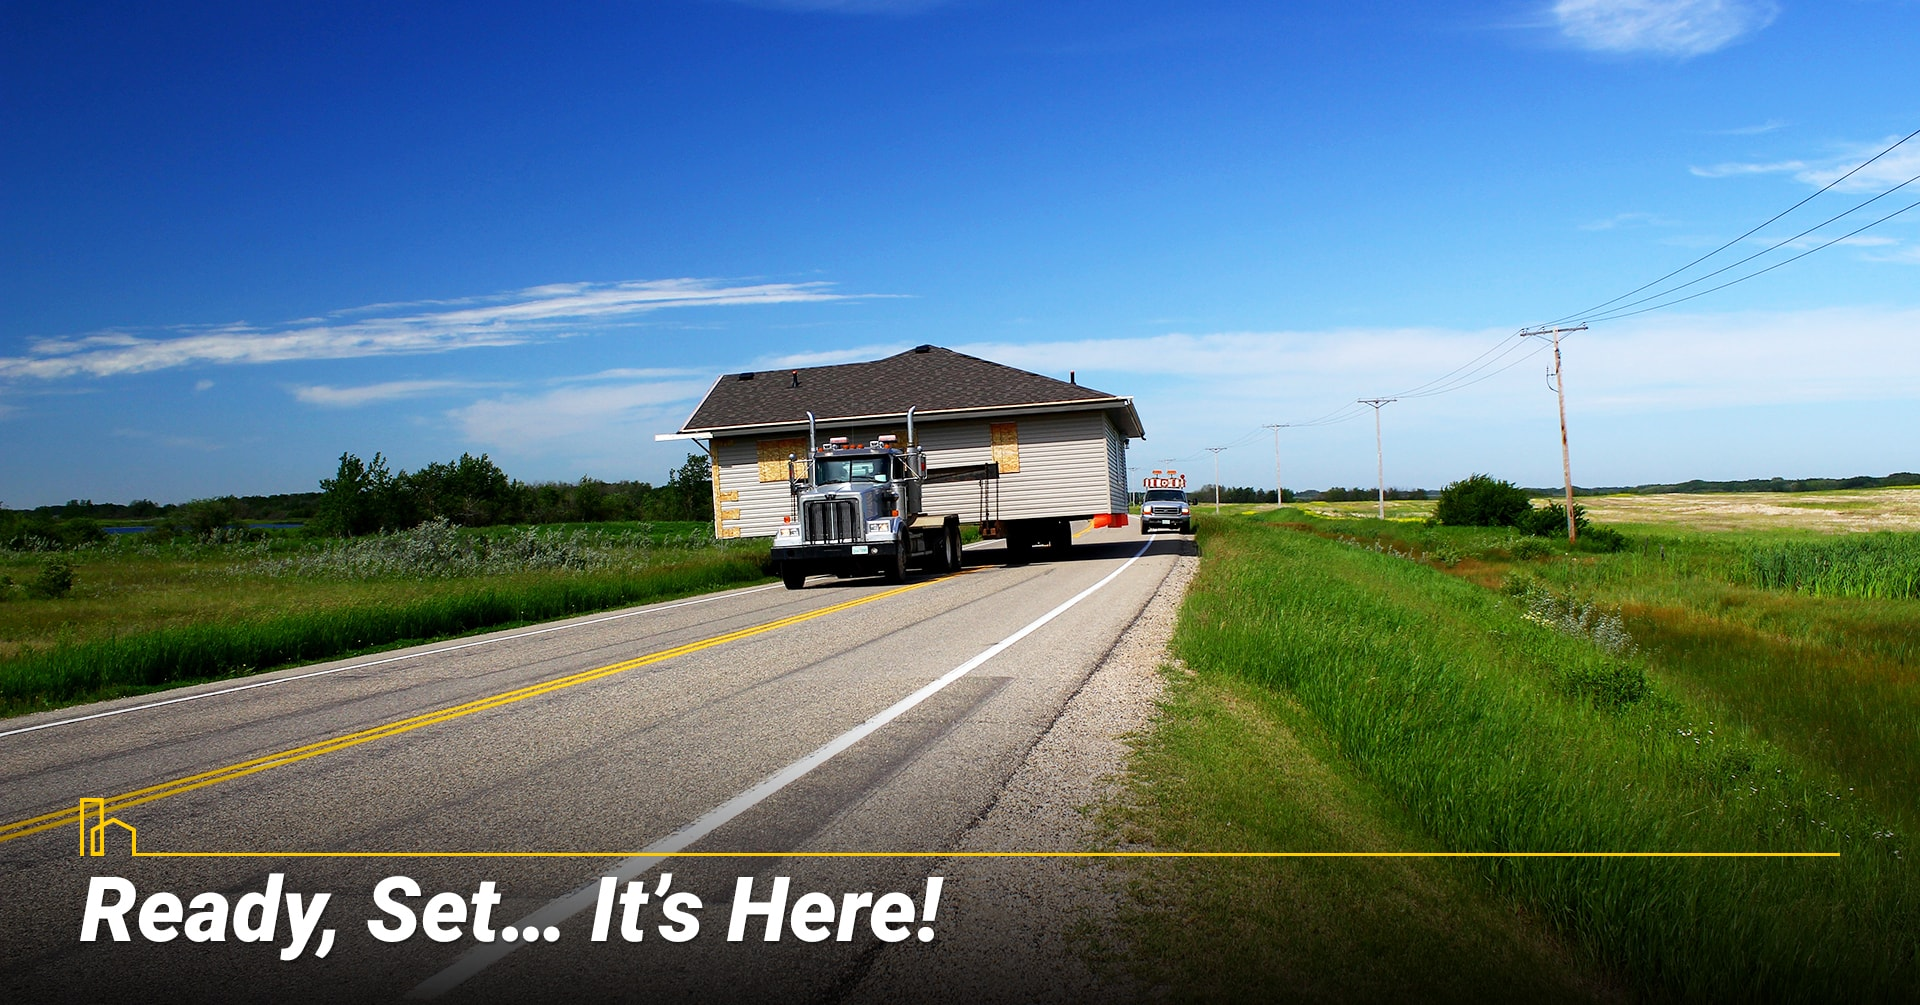 Ready, Set… It's Here! Ready to move in